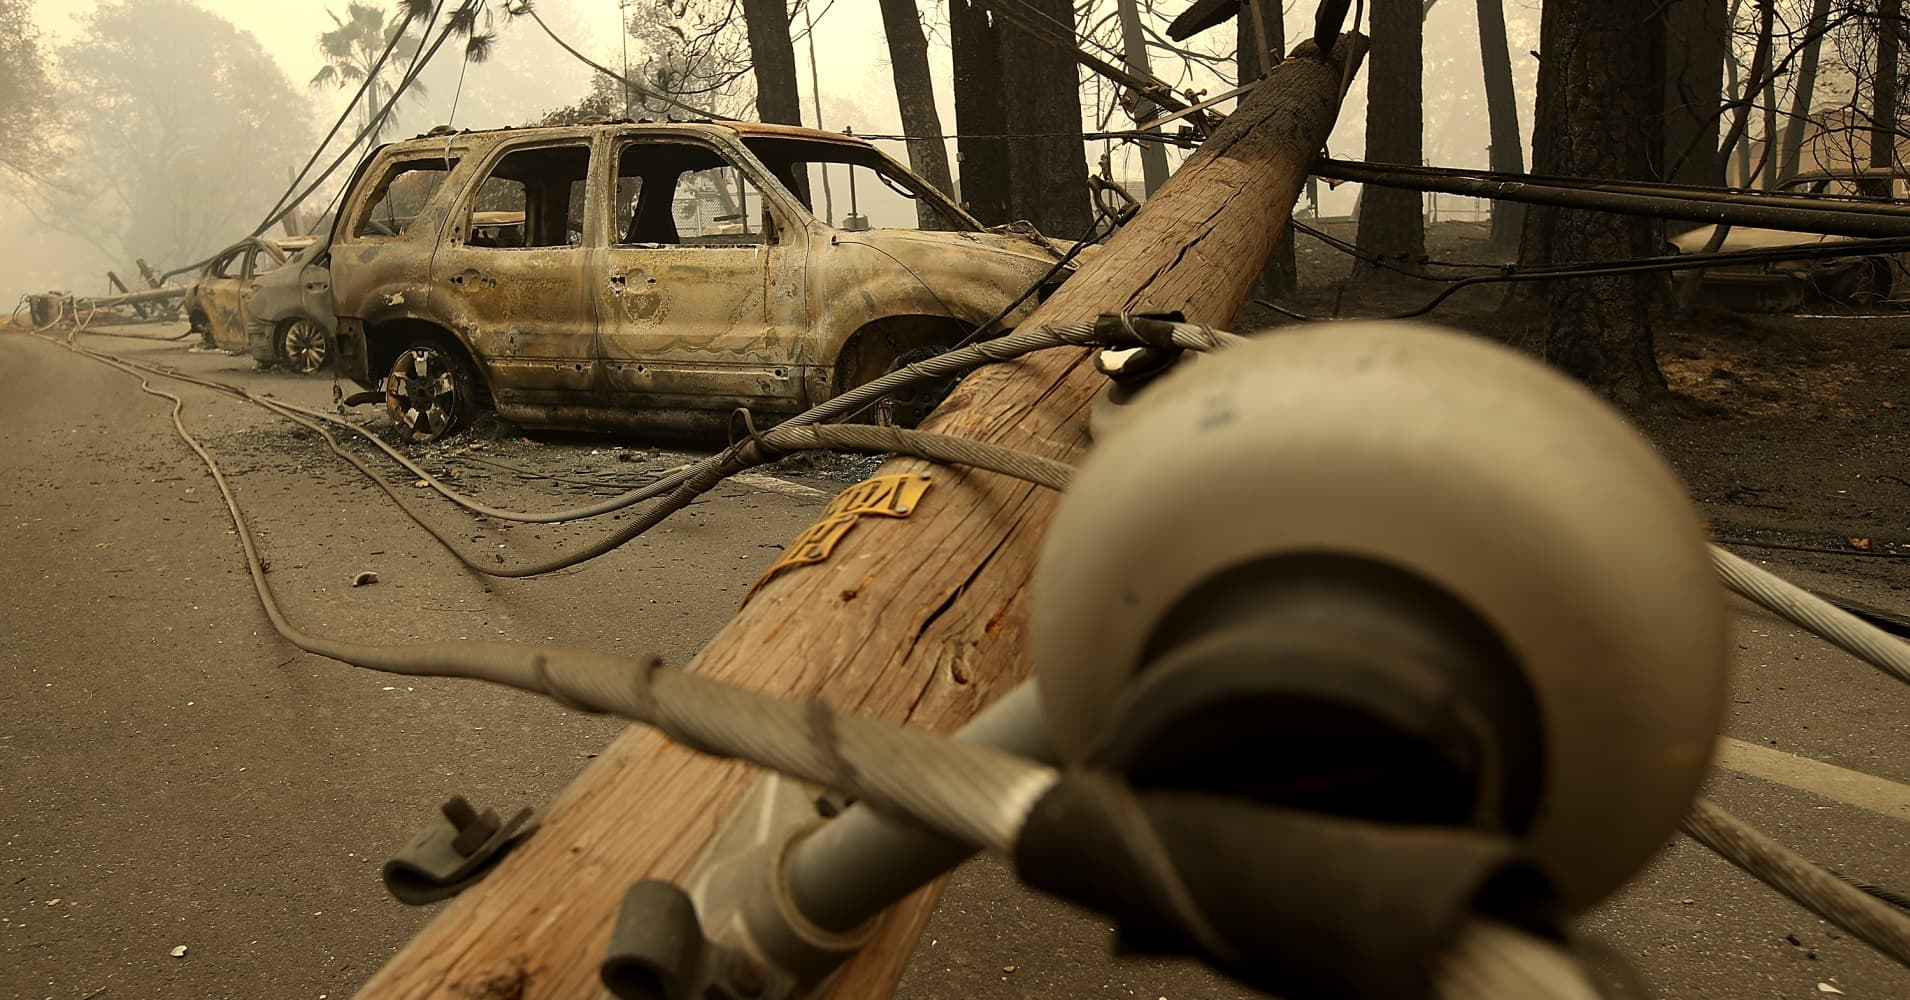 PG&E has lost half its value this week as shareholders fear utility's role in California wildfires